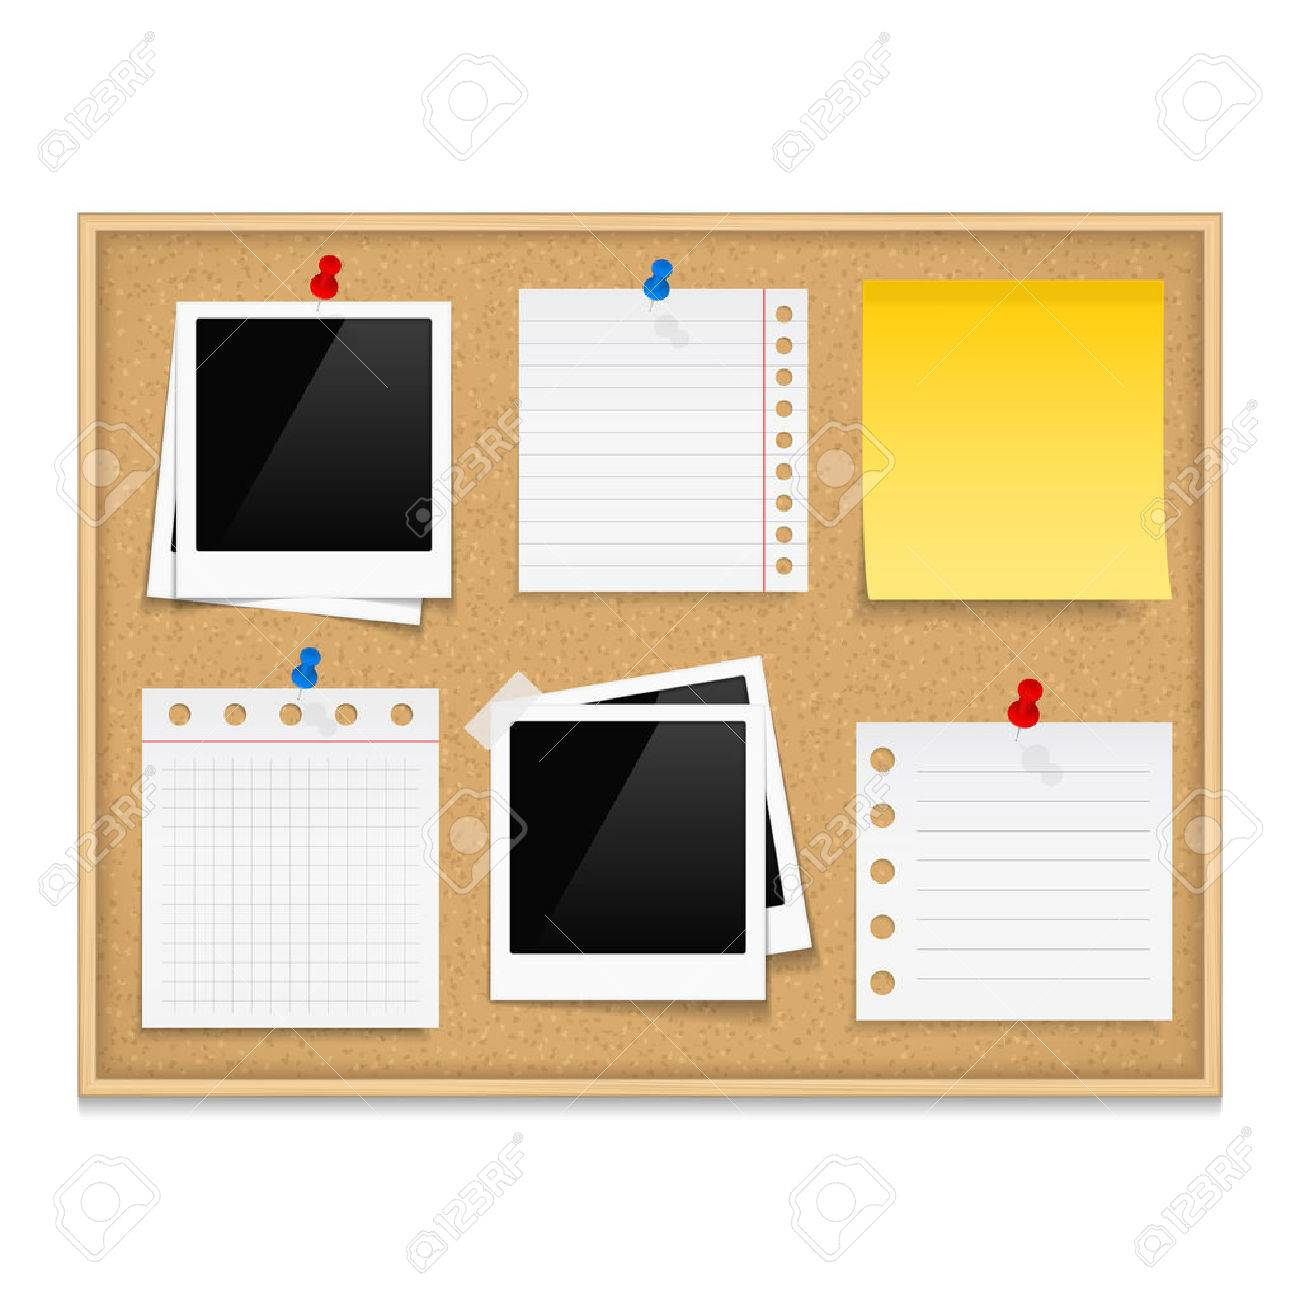 Bulletin board with photos and paper notes - 35599892